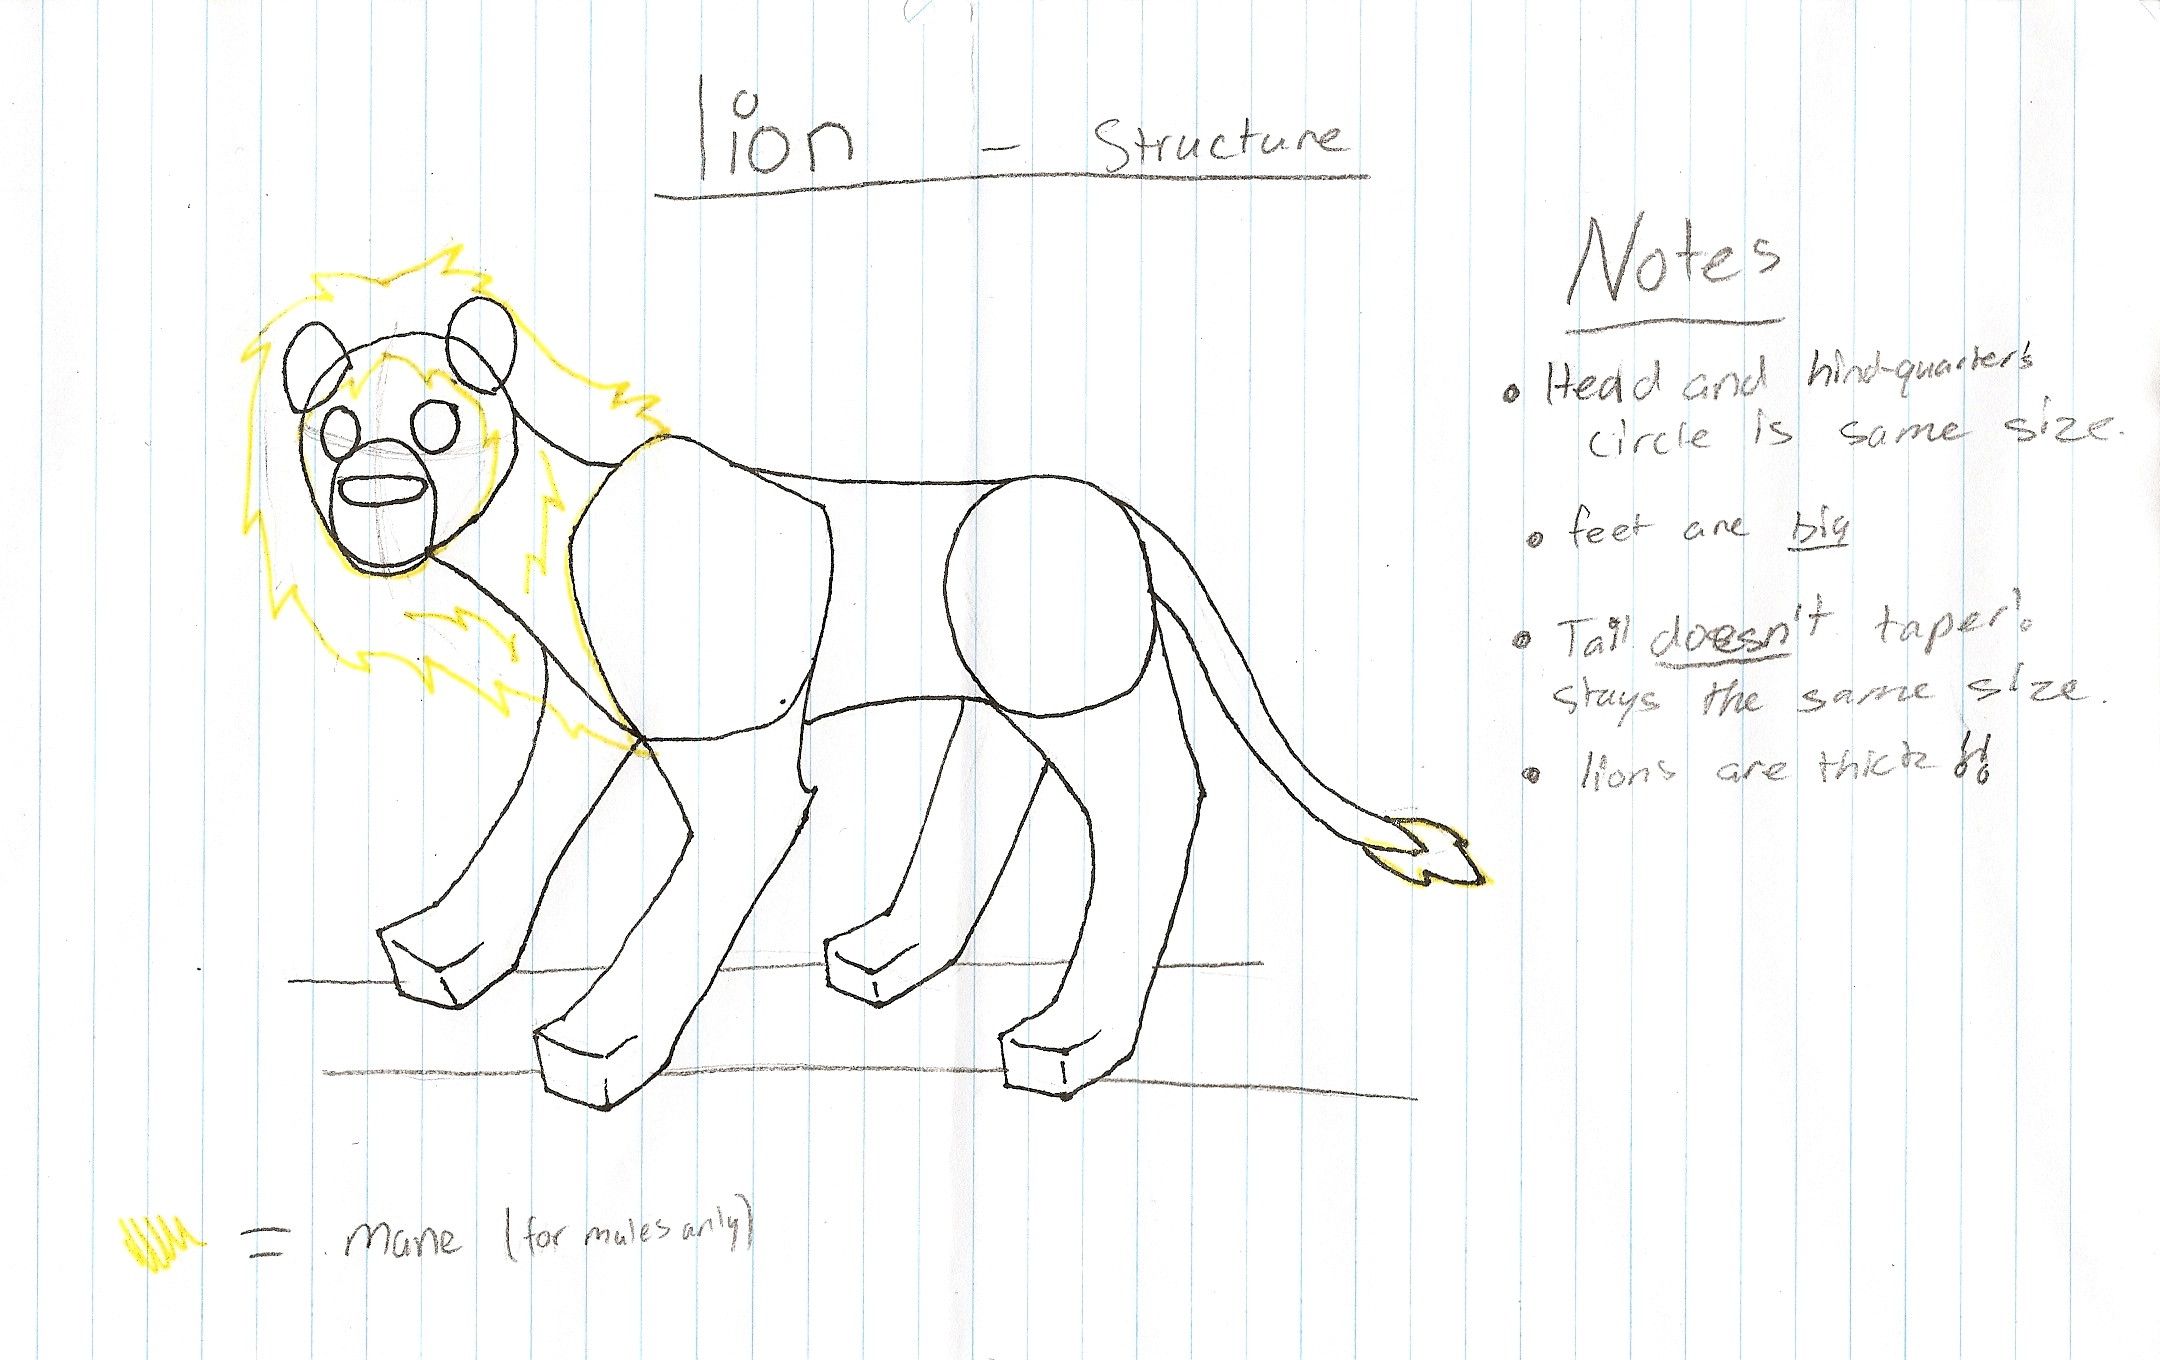 lion_practice___structure_by_dog_rose.jpg